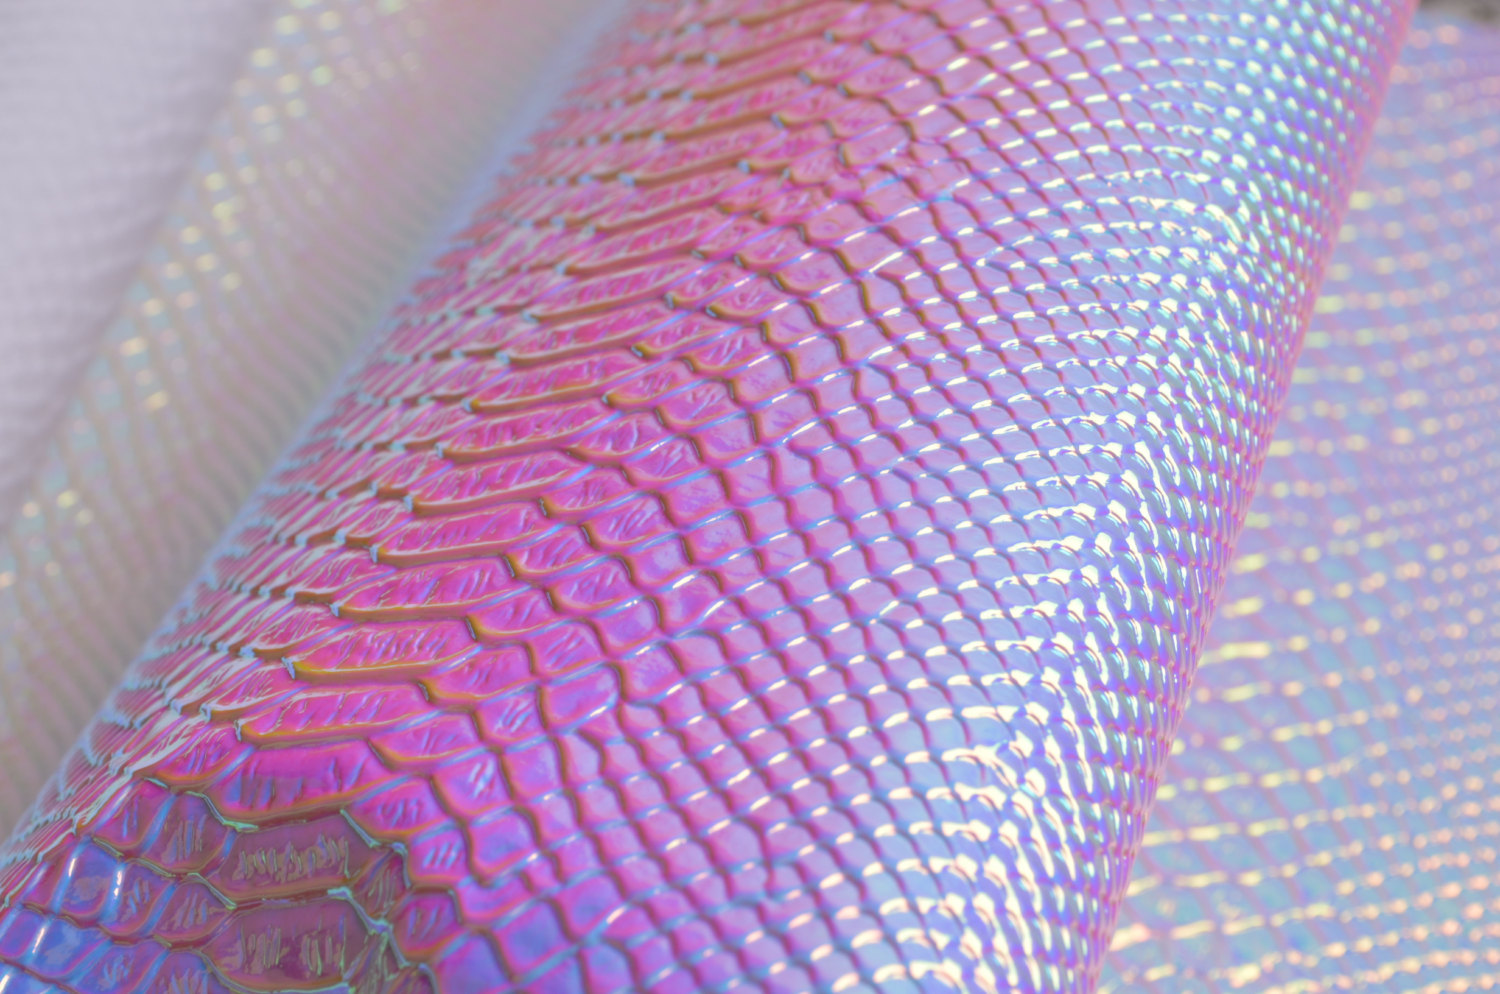 Holographic faux leather fabric from Etsy shop BransTak